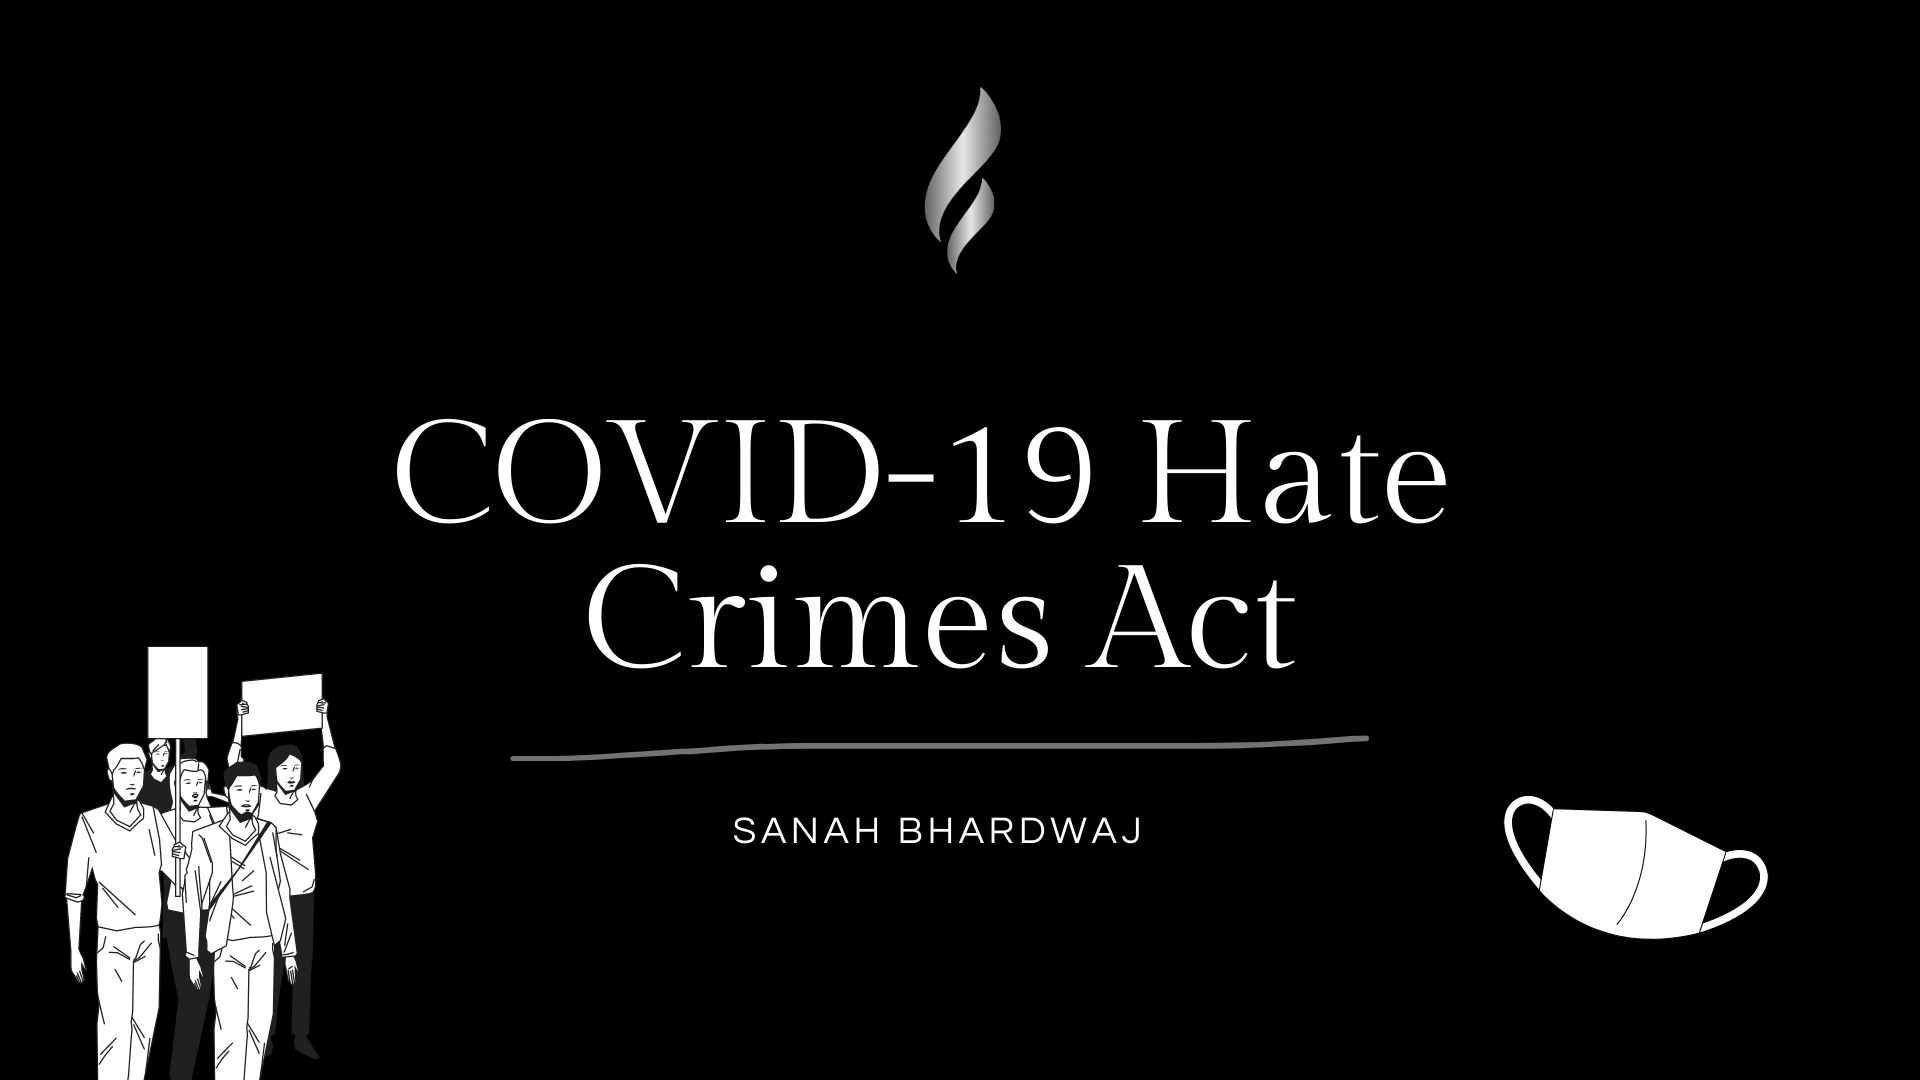 COVID-19 Hate Crimes Act Flourishes Through Senate – Approval Anticipated in the House